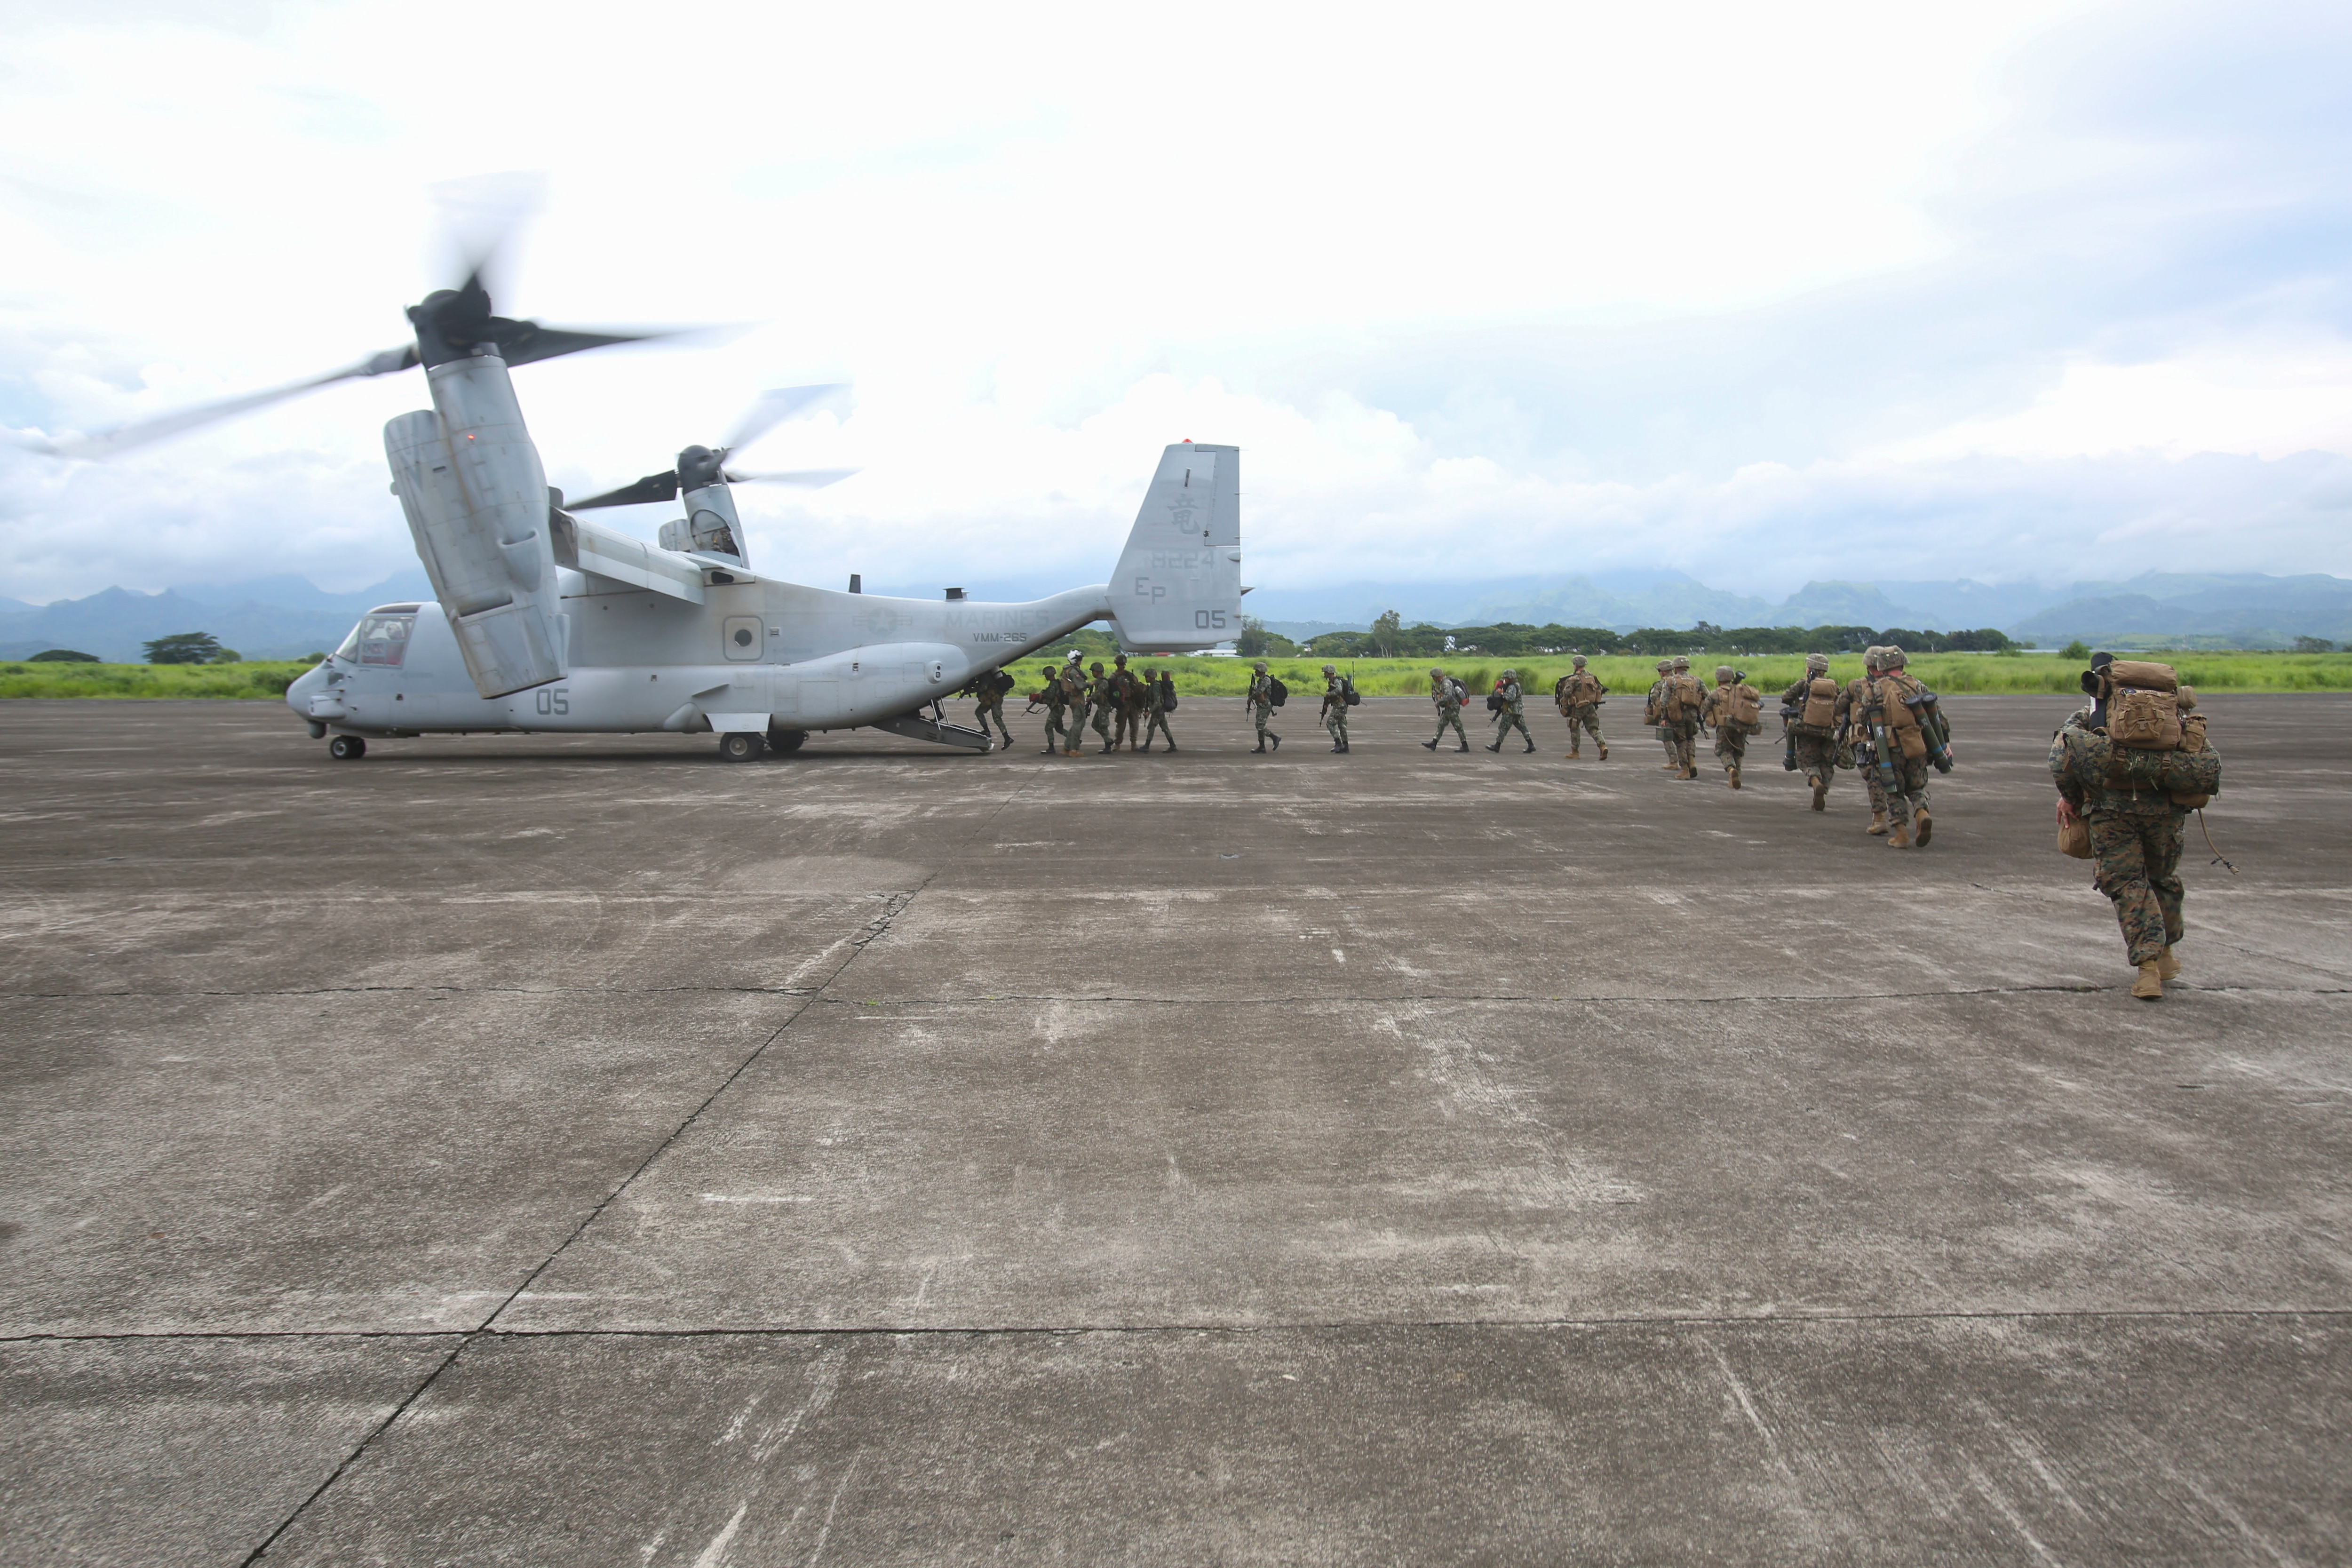 Marines in the Philippines